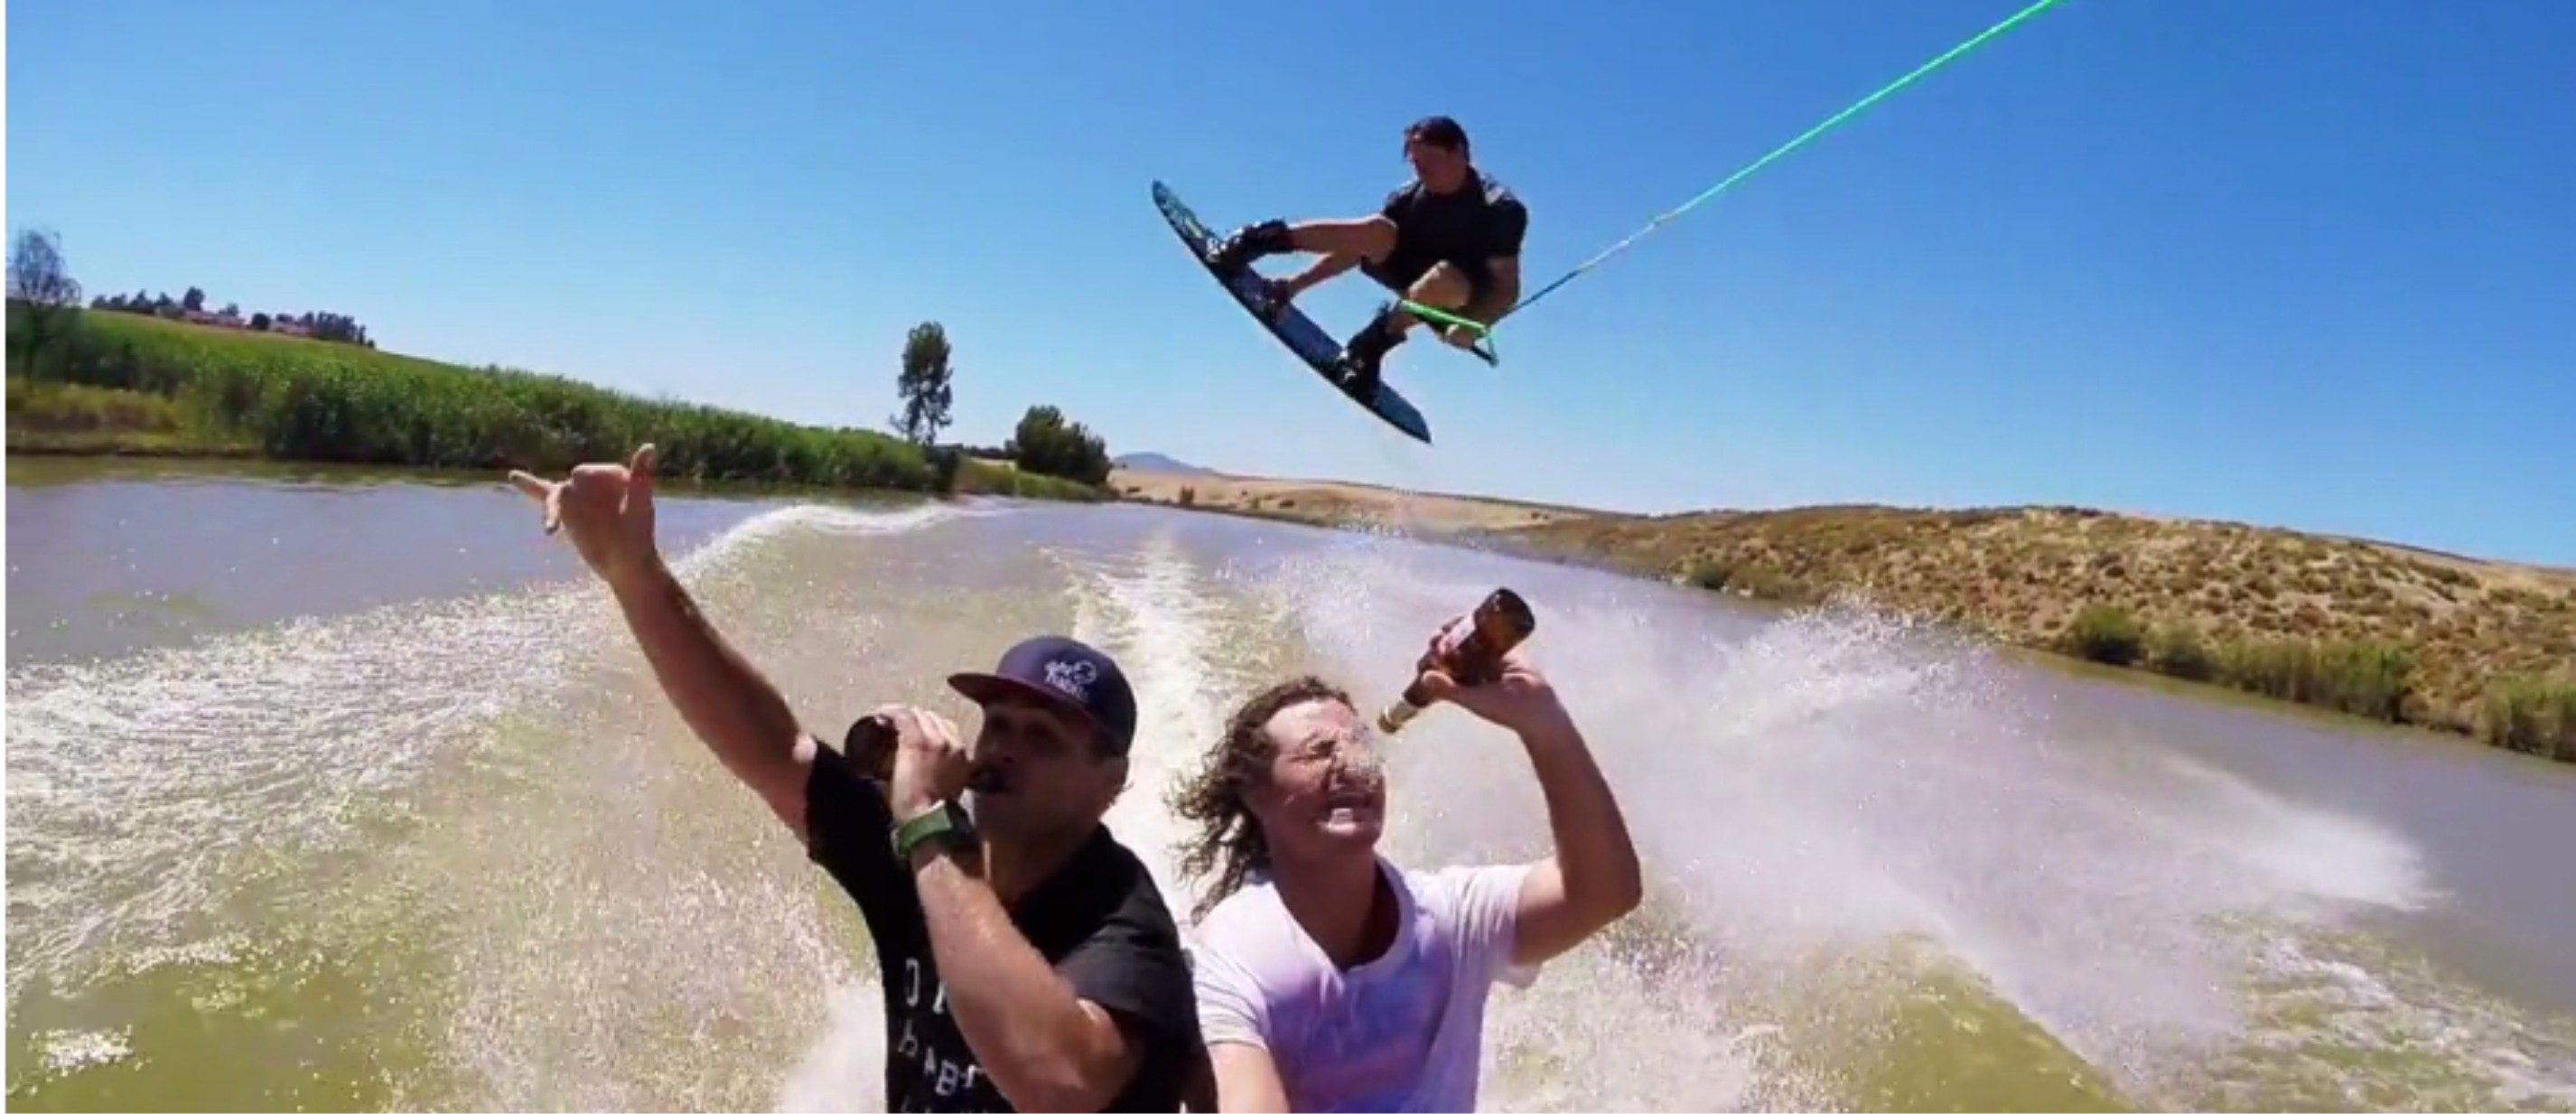 A day out wakeboarding with the Dirty Habits crew